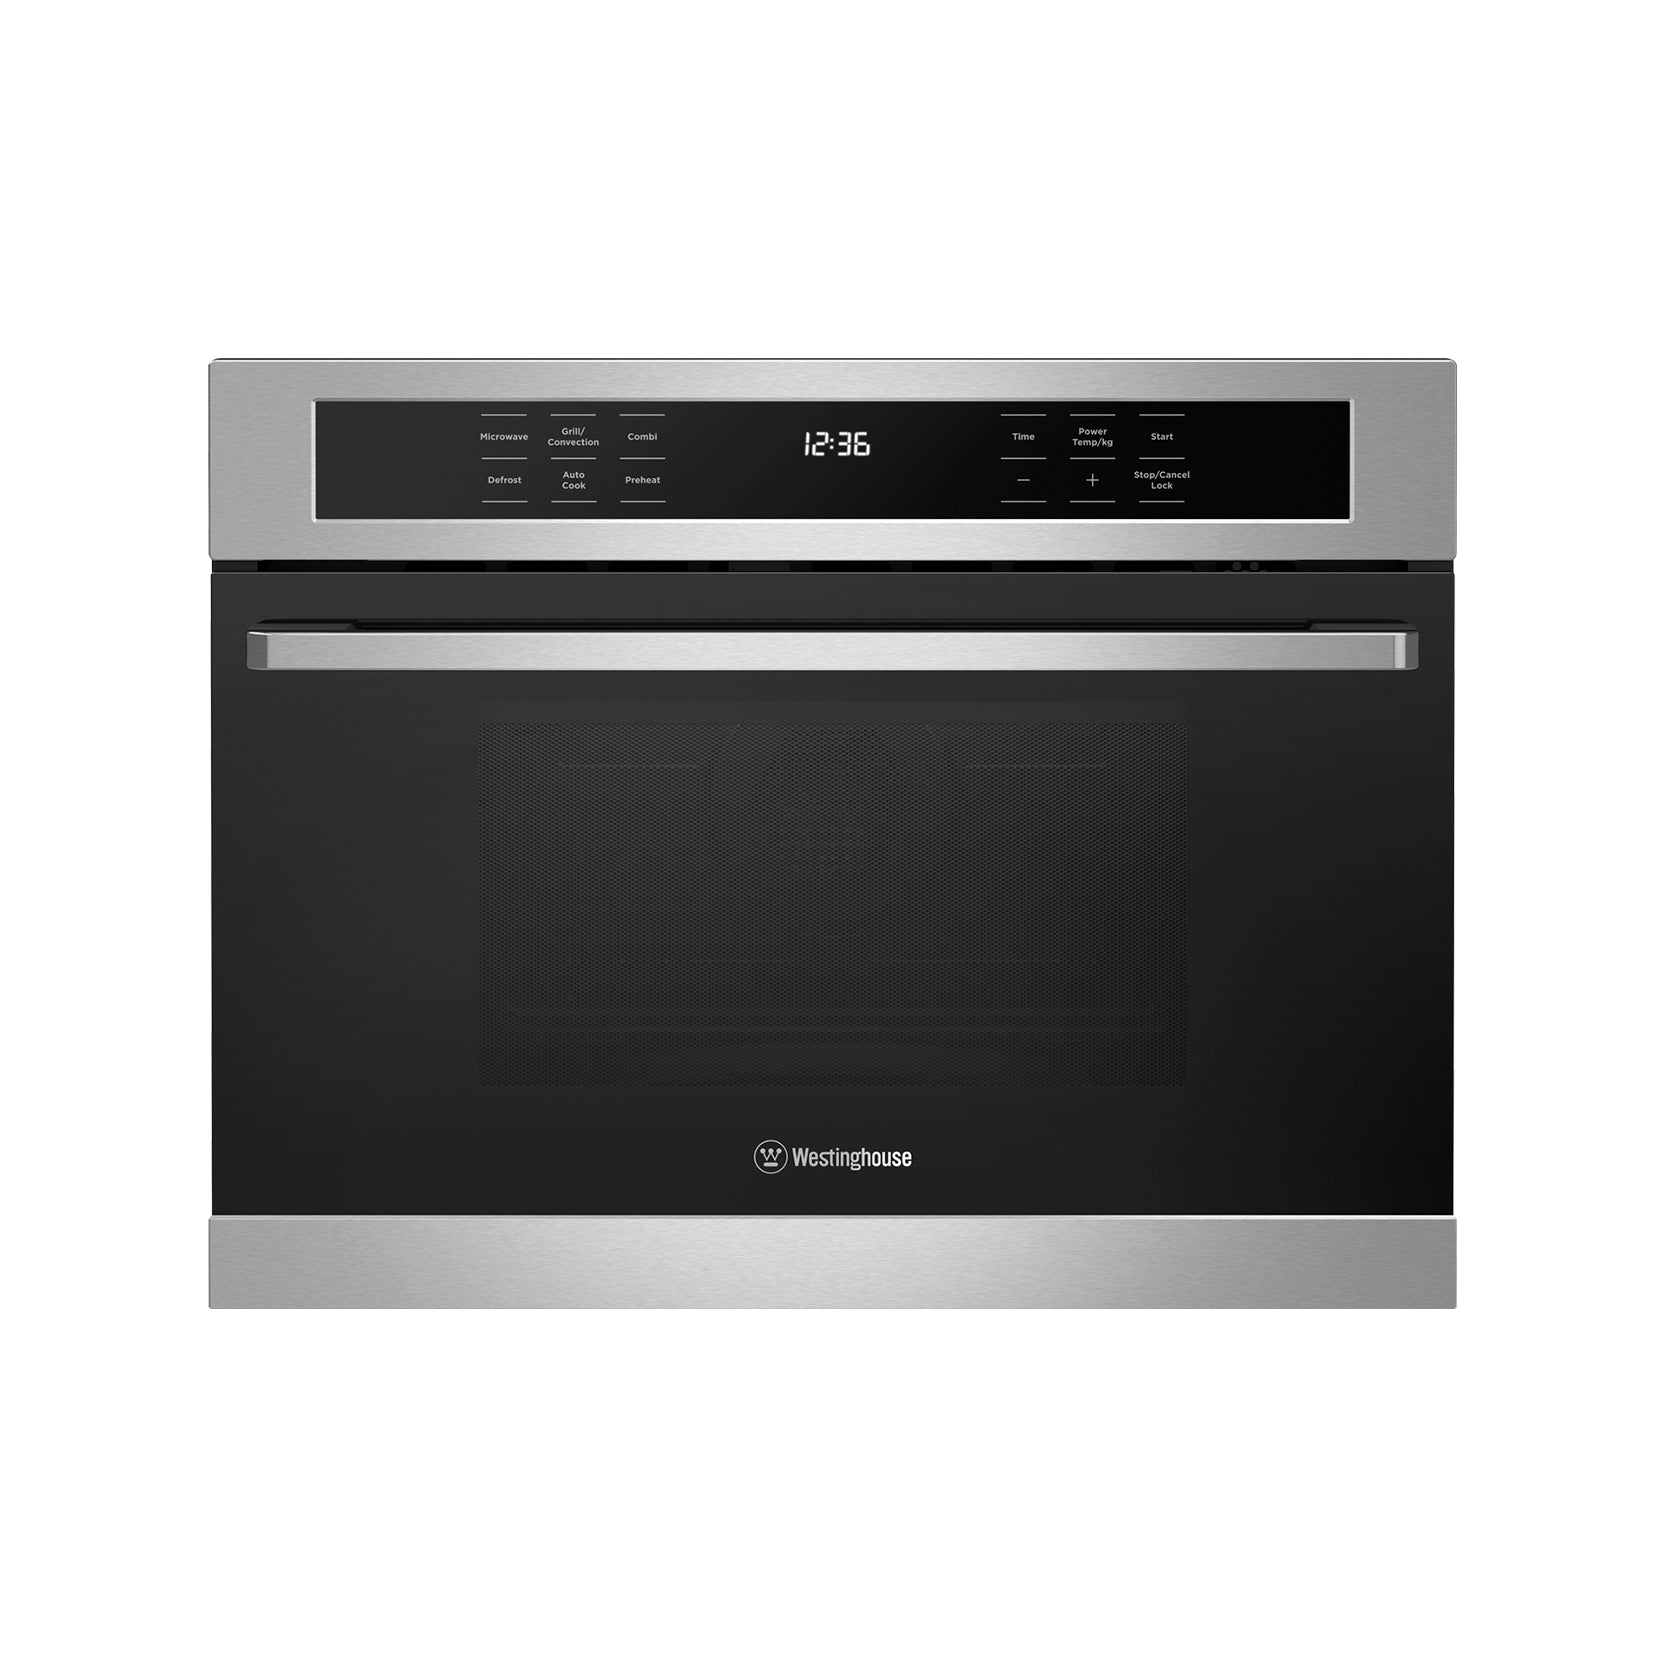 Westinghouse WMB4425SC 44L Built-in Combination Microwave